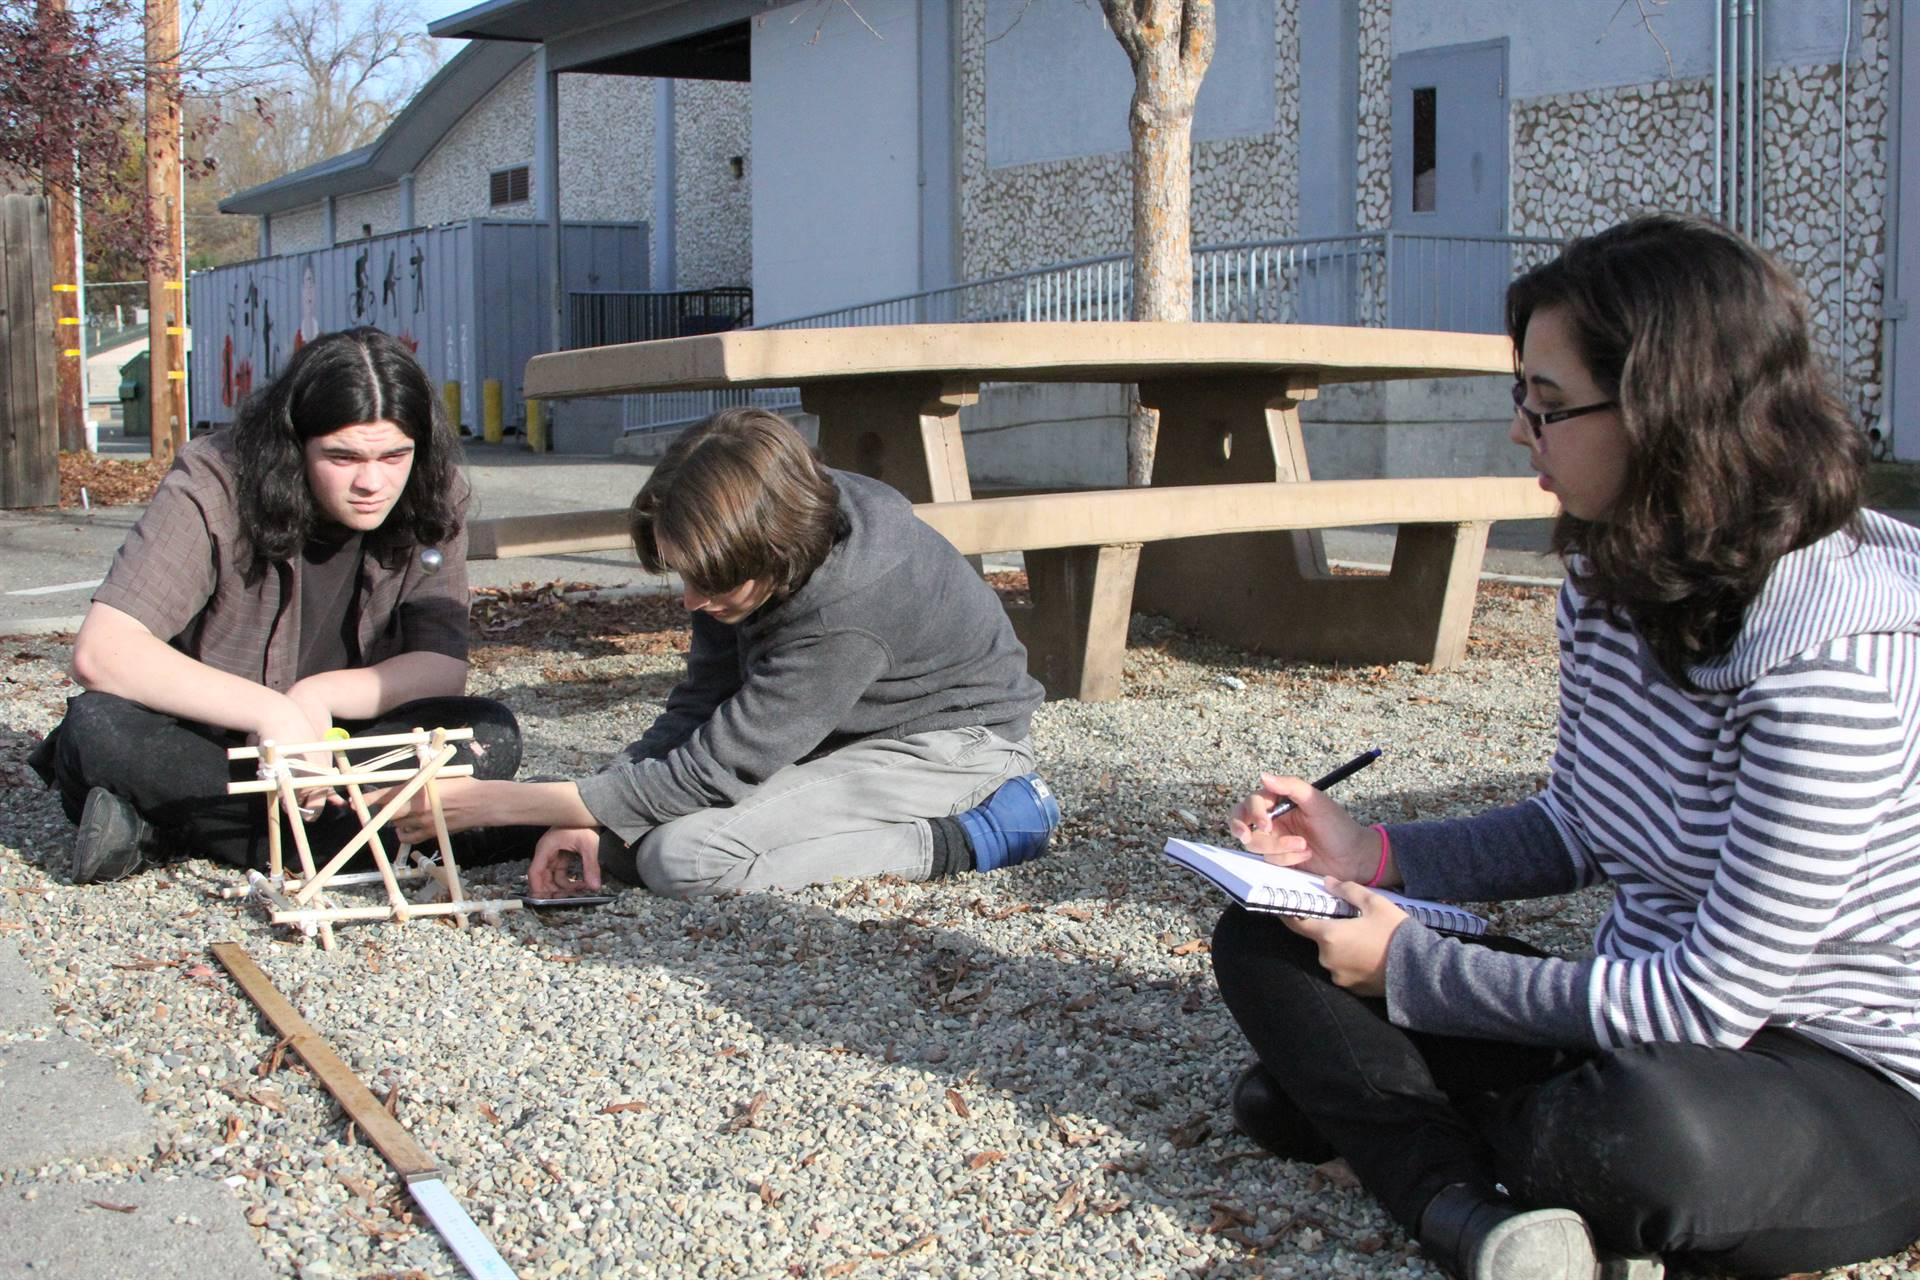 Physics students test catapults.